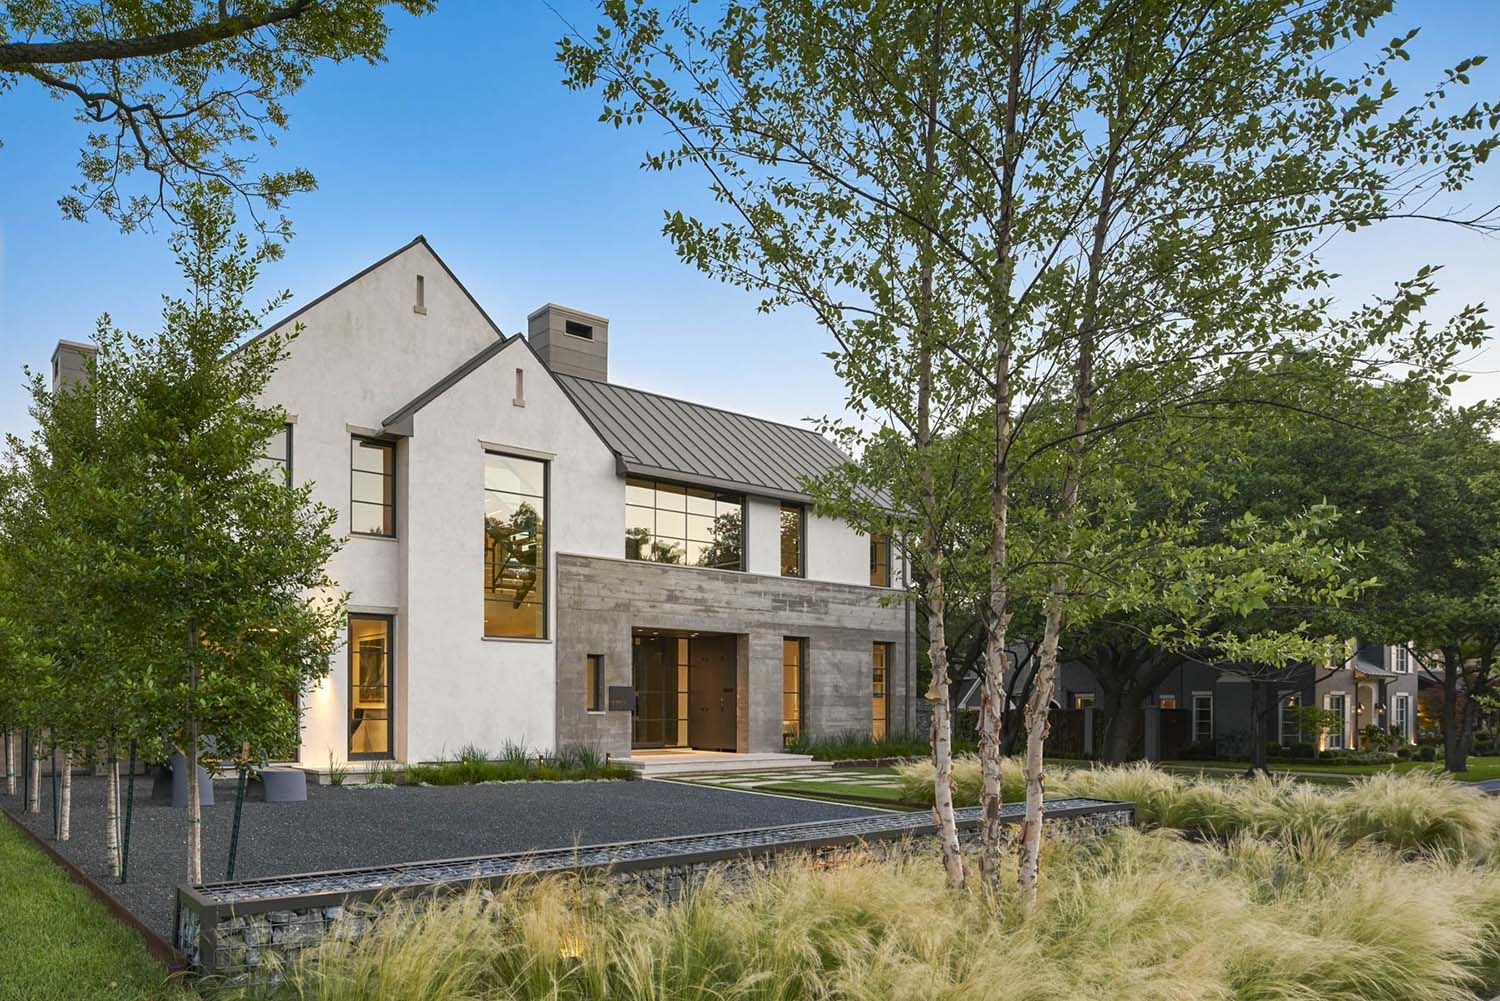 Outstanding Contemporary Home In Texas With Inspiring Design Details In 2020 Modern Farmhouse Exterior Architect Contemporary House